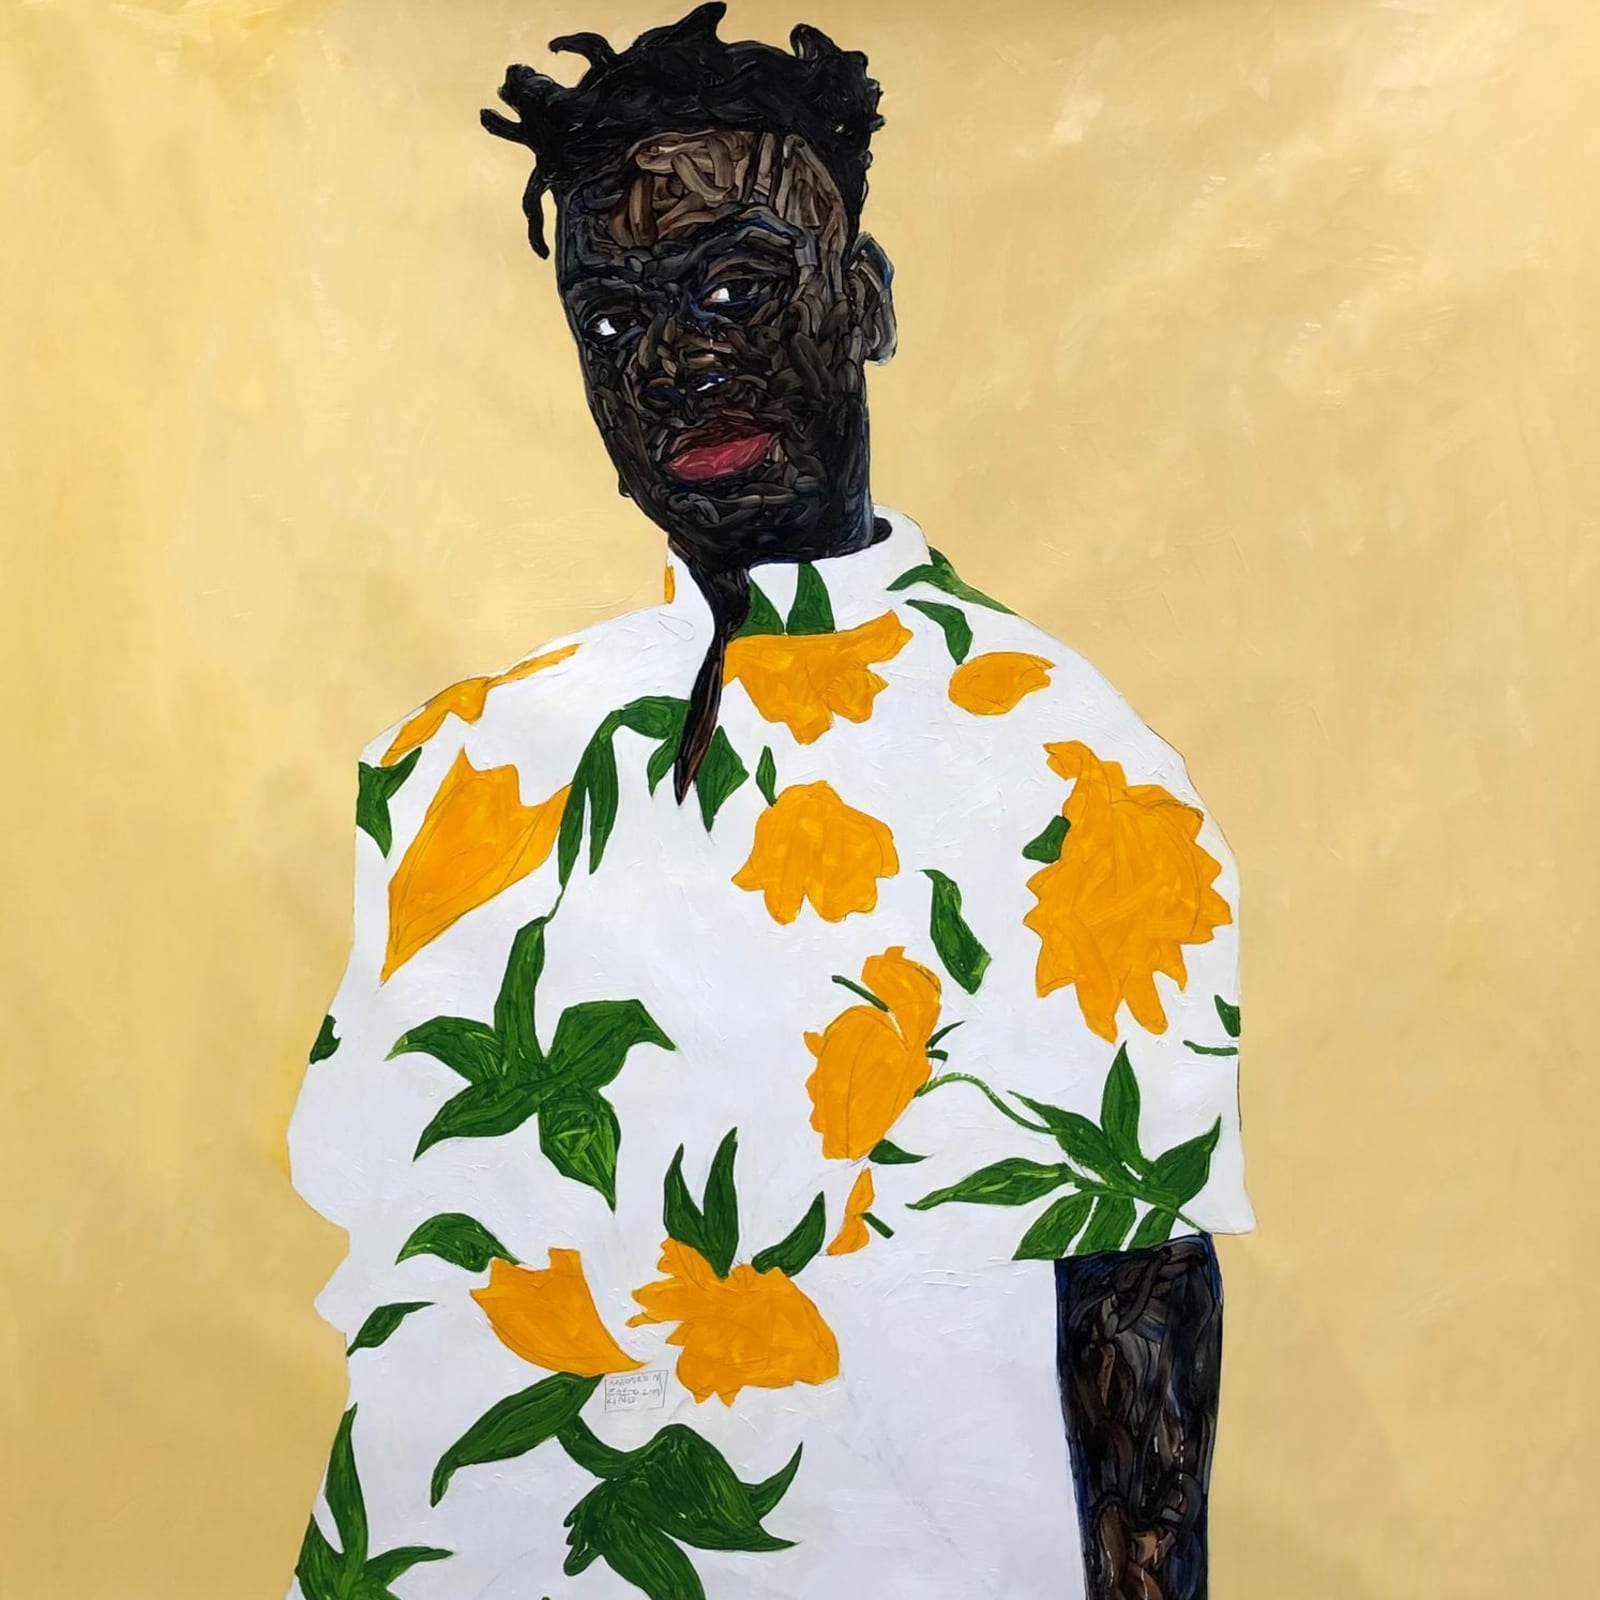 Amoako Boafo, Sunflower Shirt, 2019